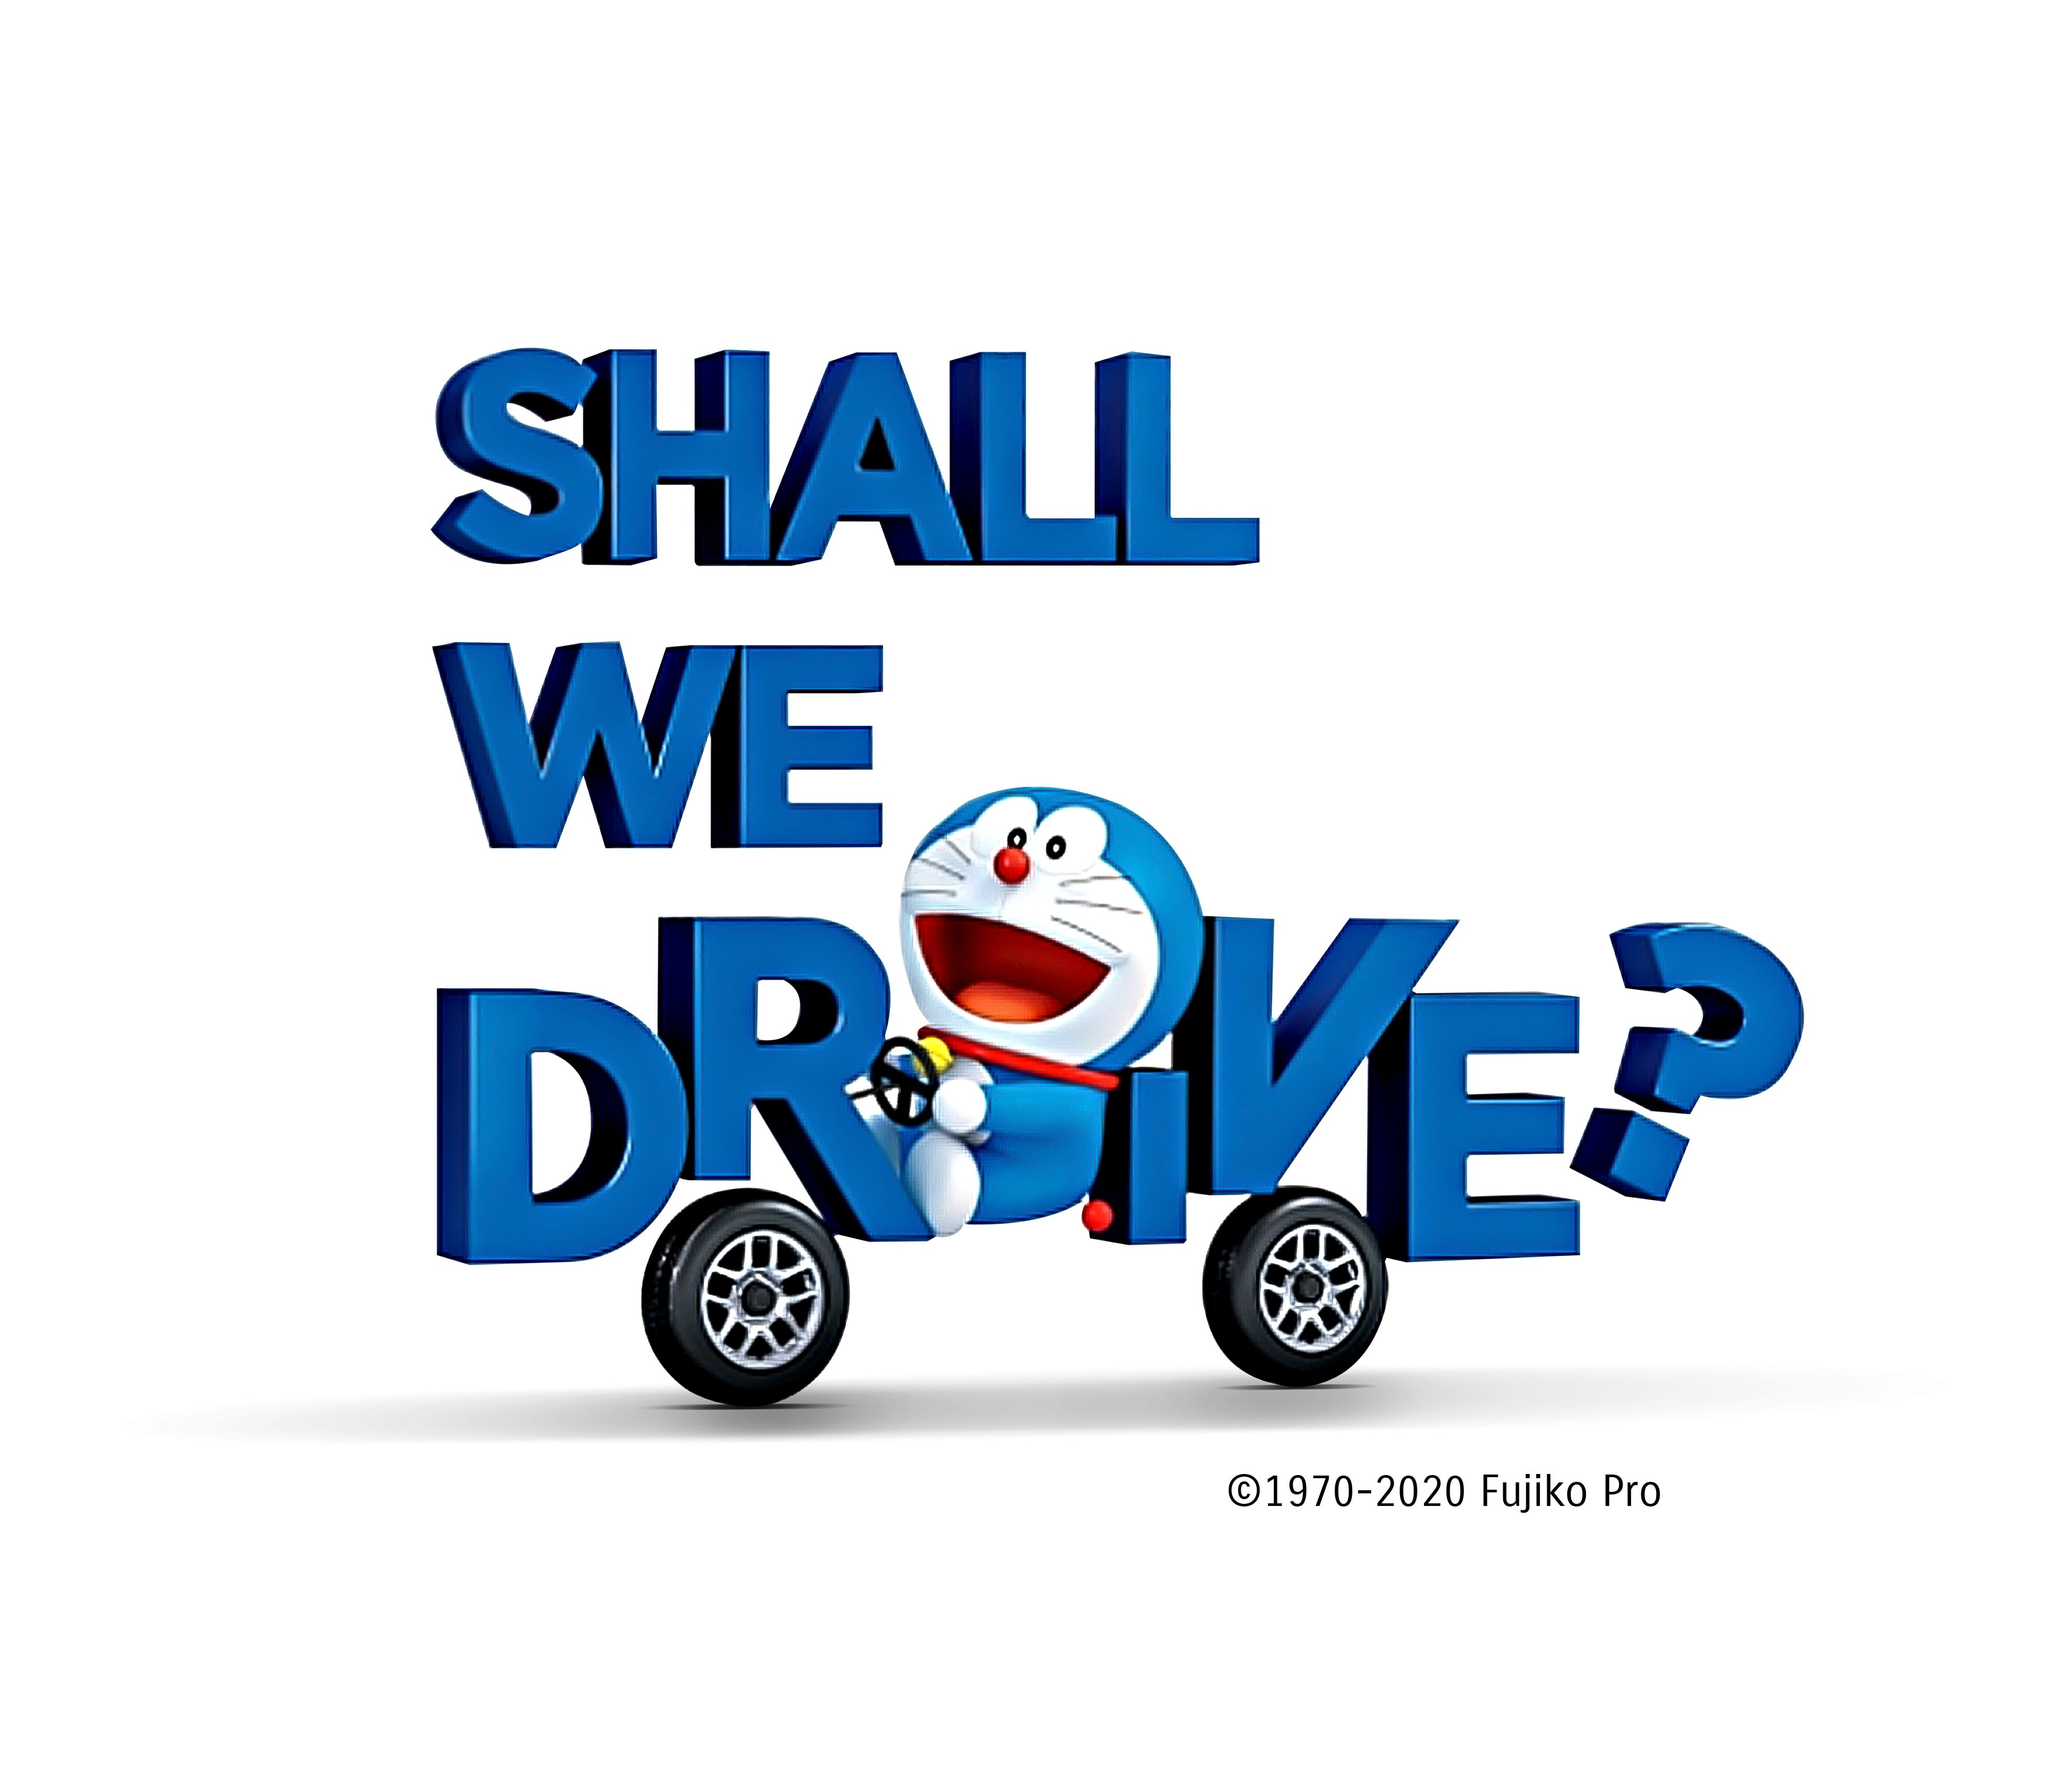 Shall We Drive? Let Suzuki and Doraemon Be With You.